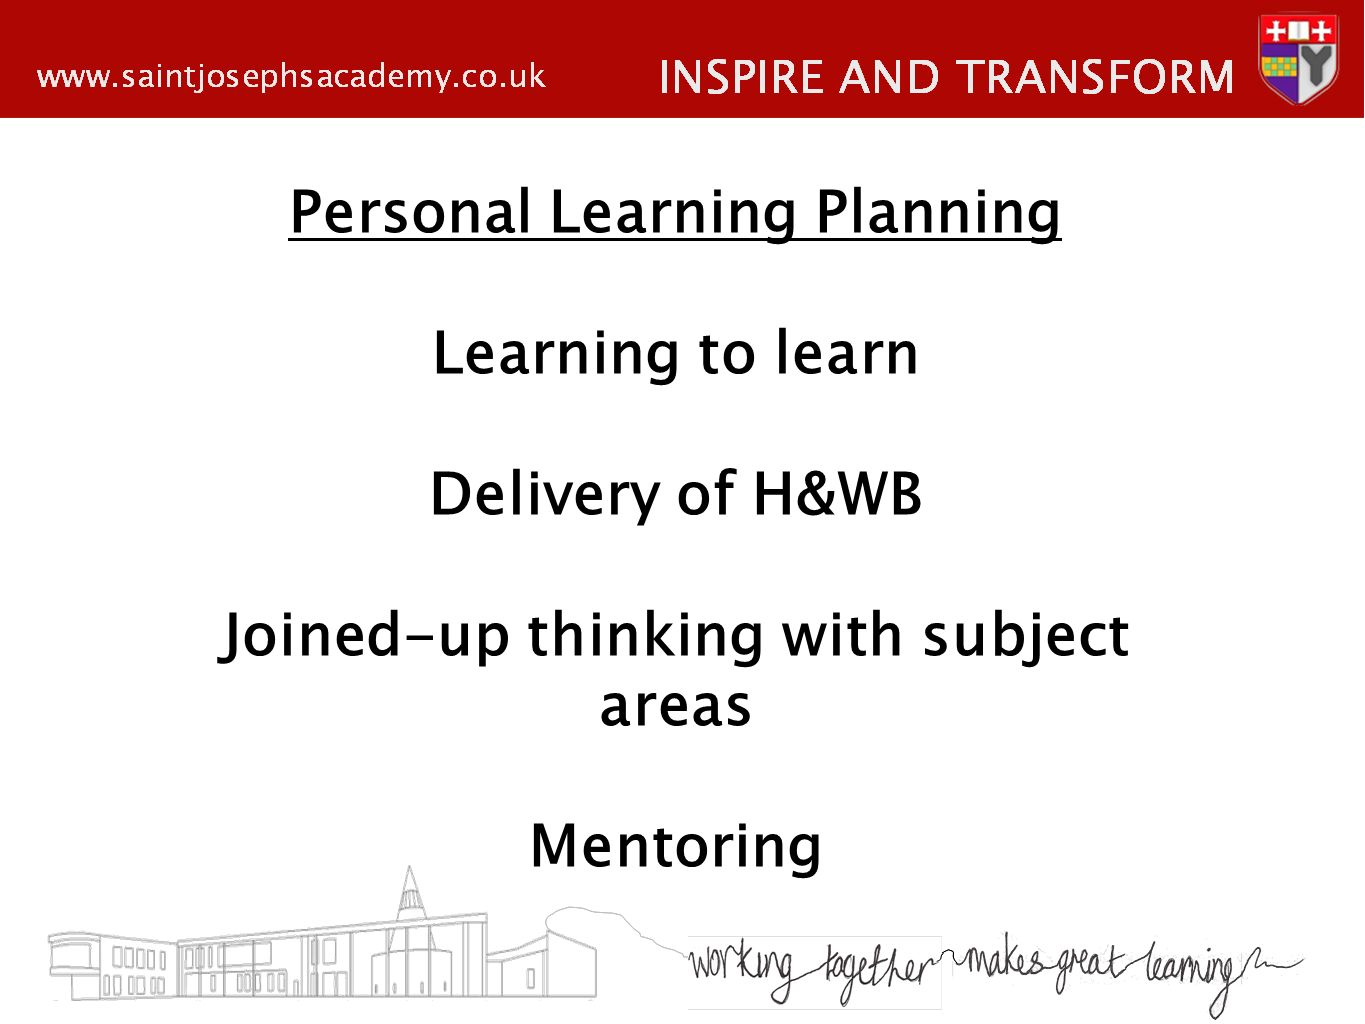 Personal Learning Planning Learning to learn Delivery of H&WB Joined-up thinking with subject areas Mentoring